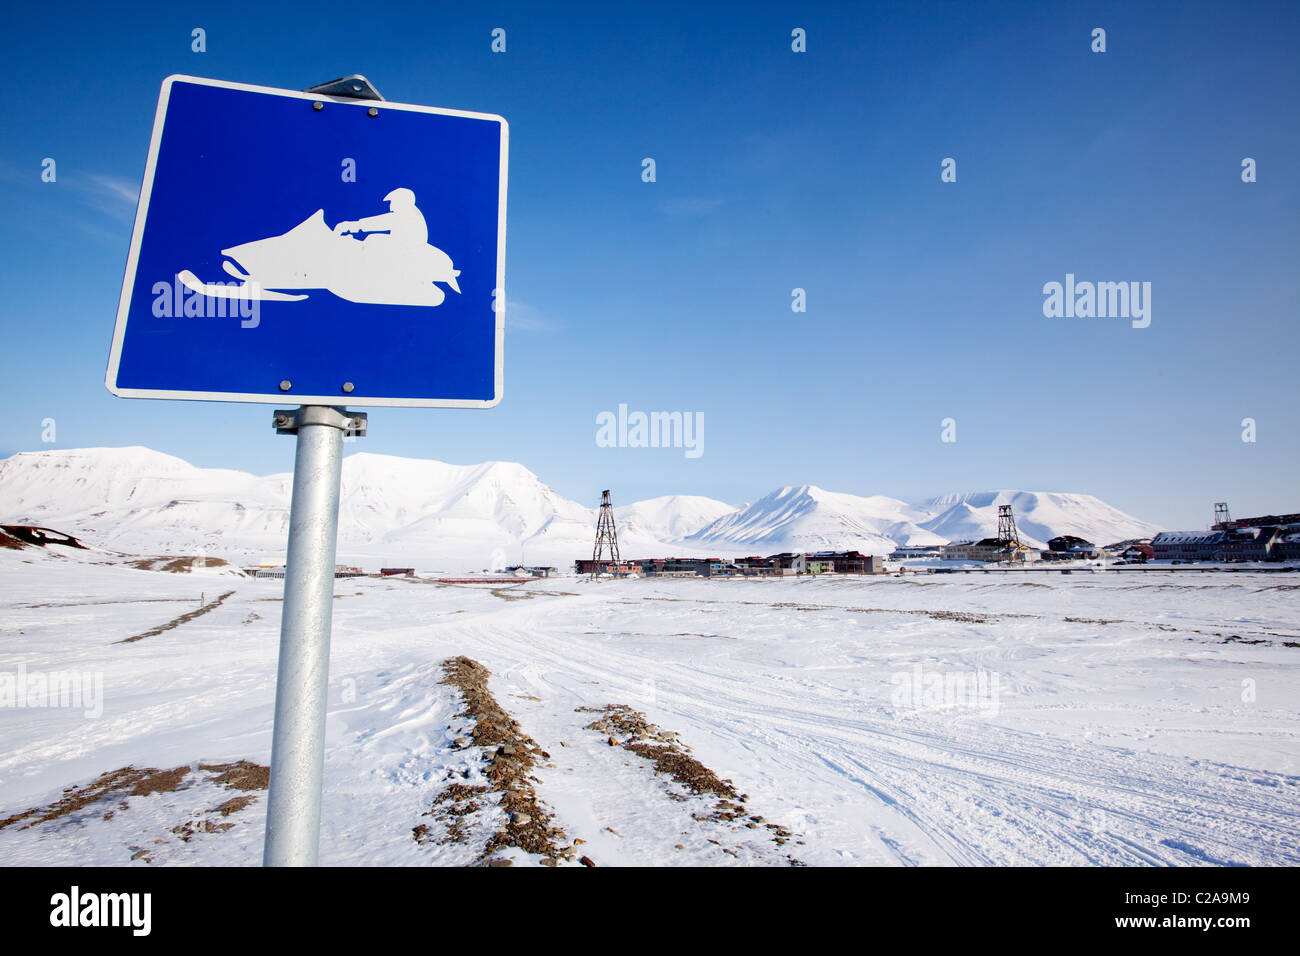 A snowmobile trail sign in Longyearbyen, Svalbard, Norway - Stock Image